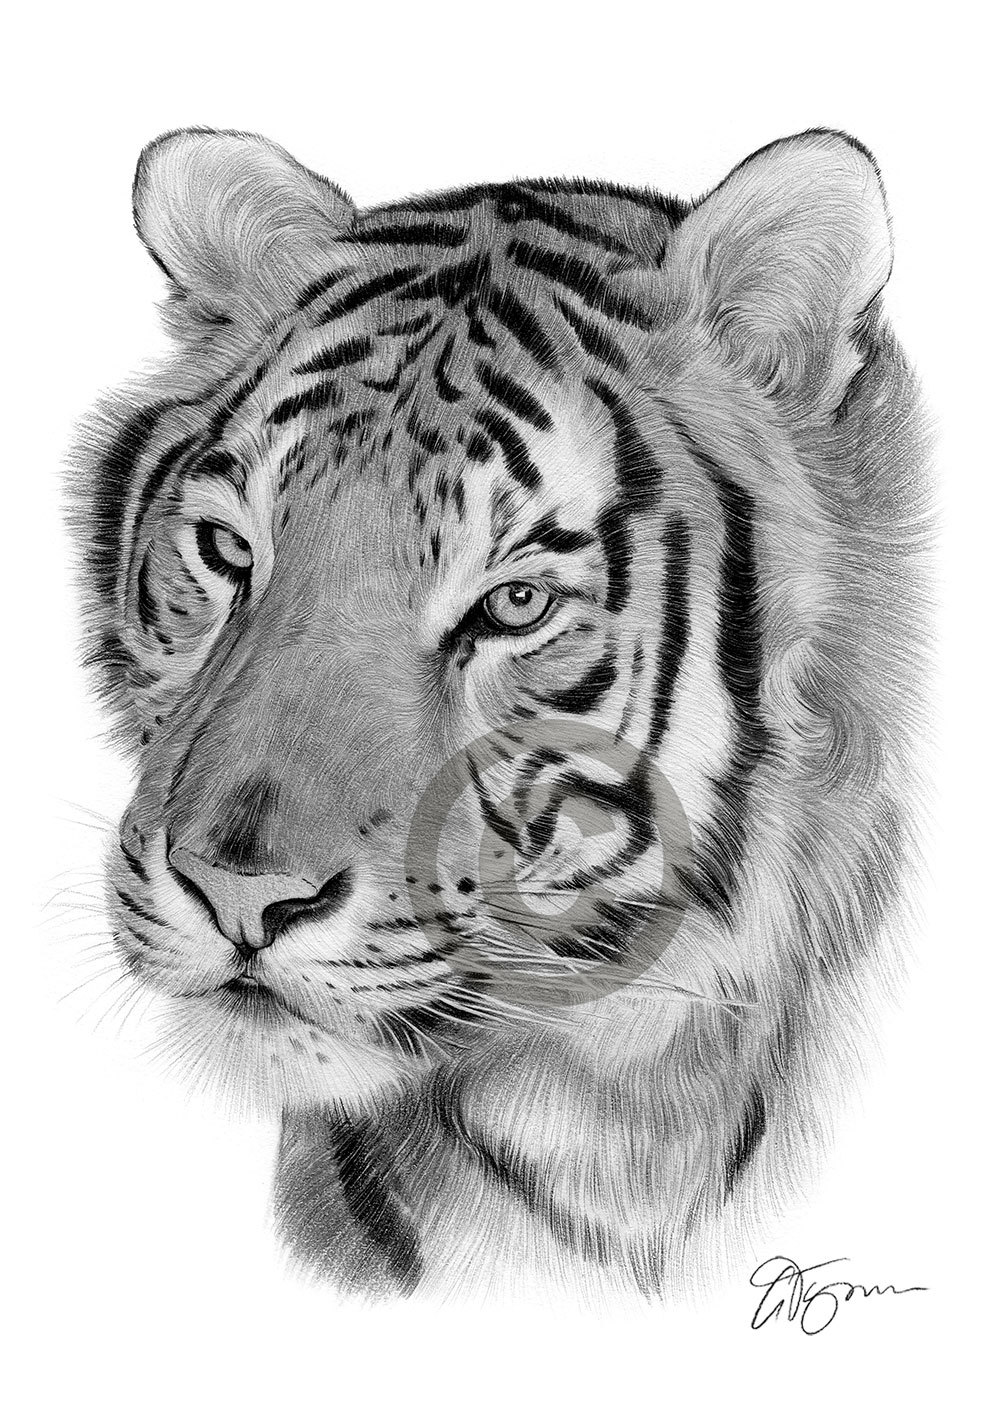 Adult Bengal Tiger pencil drawing by artist Gary Tymon